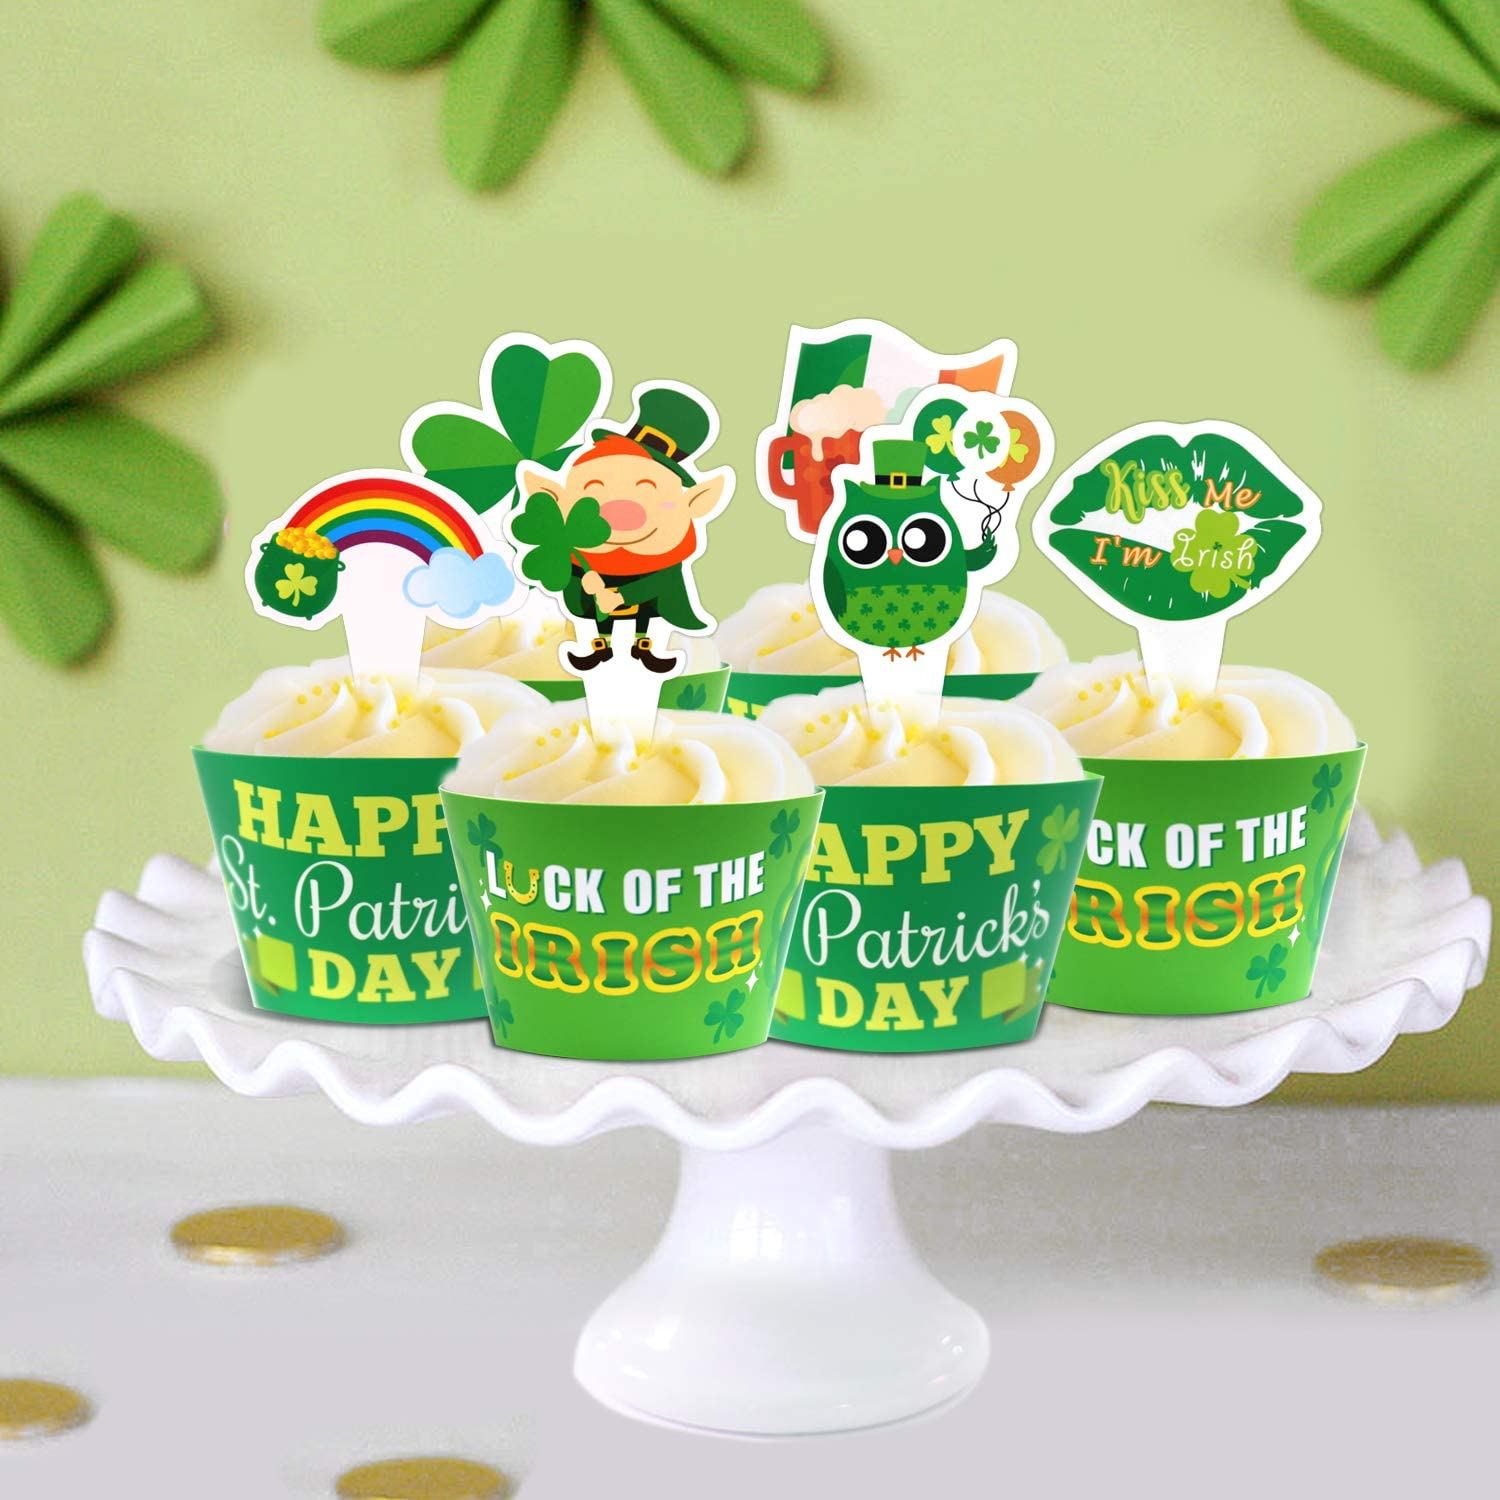 Saint Paddys Day Party Cupcake Decorations Supplies St Patricks Day Cupcake Toppers and Wrappers Set of 24